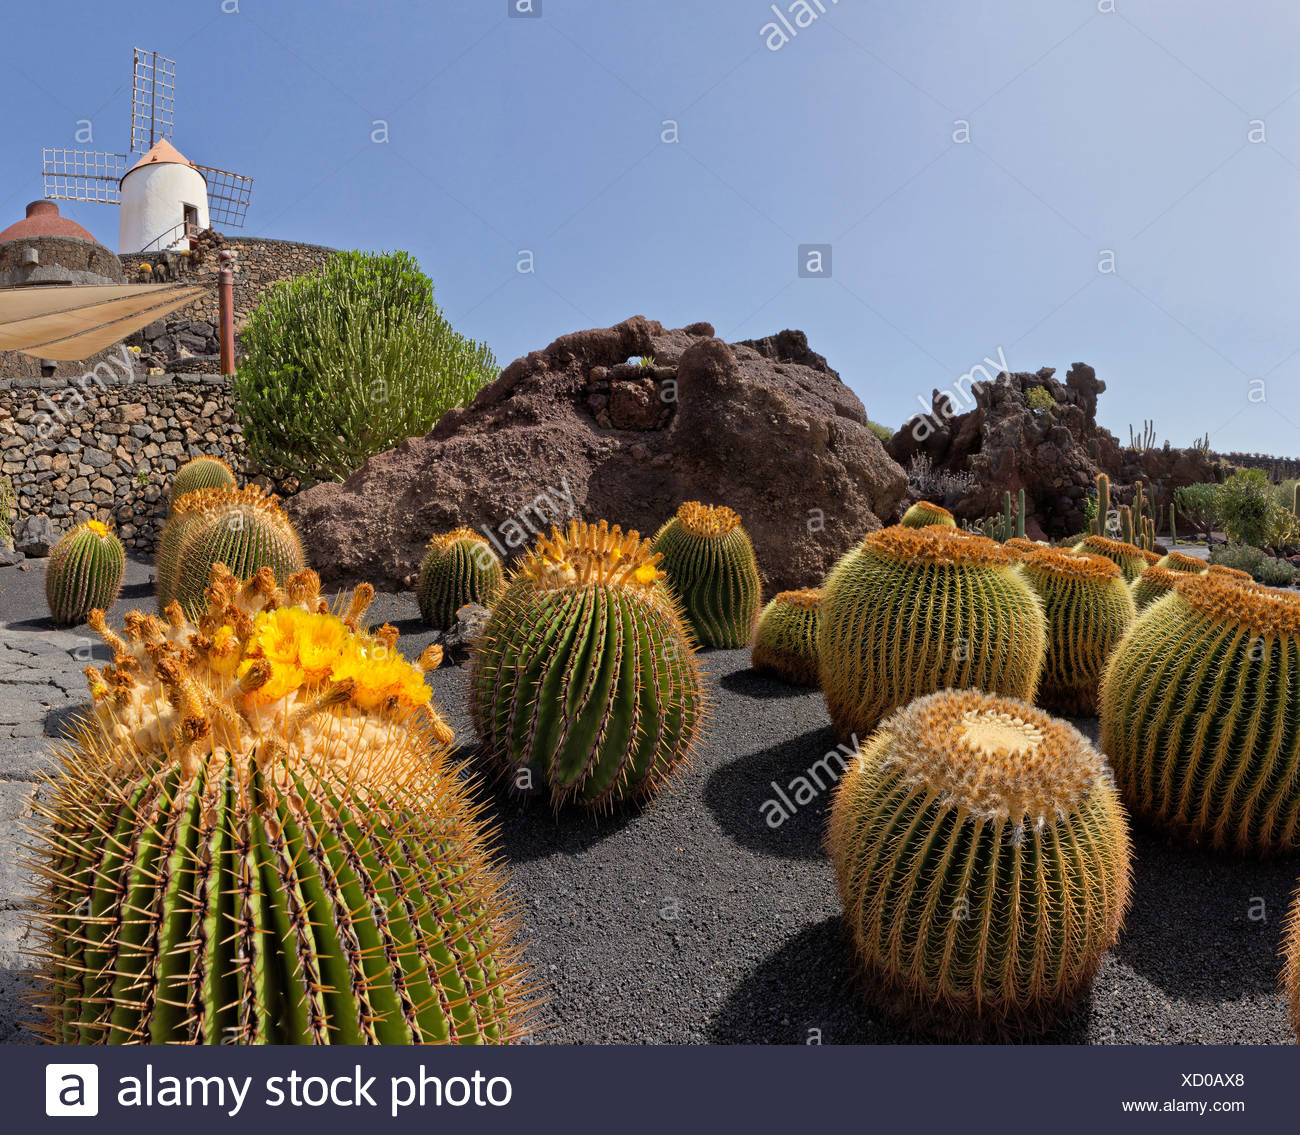 Spain, Lanzarote, Guatiza, Jardin de Cactus, cactus, garden, windmill, flowers, summer, Canary Islands, - Stock Image